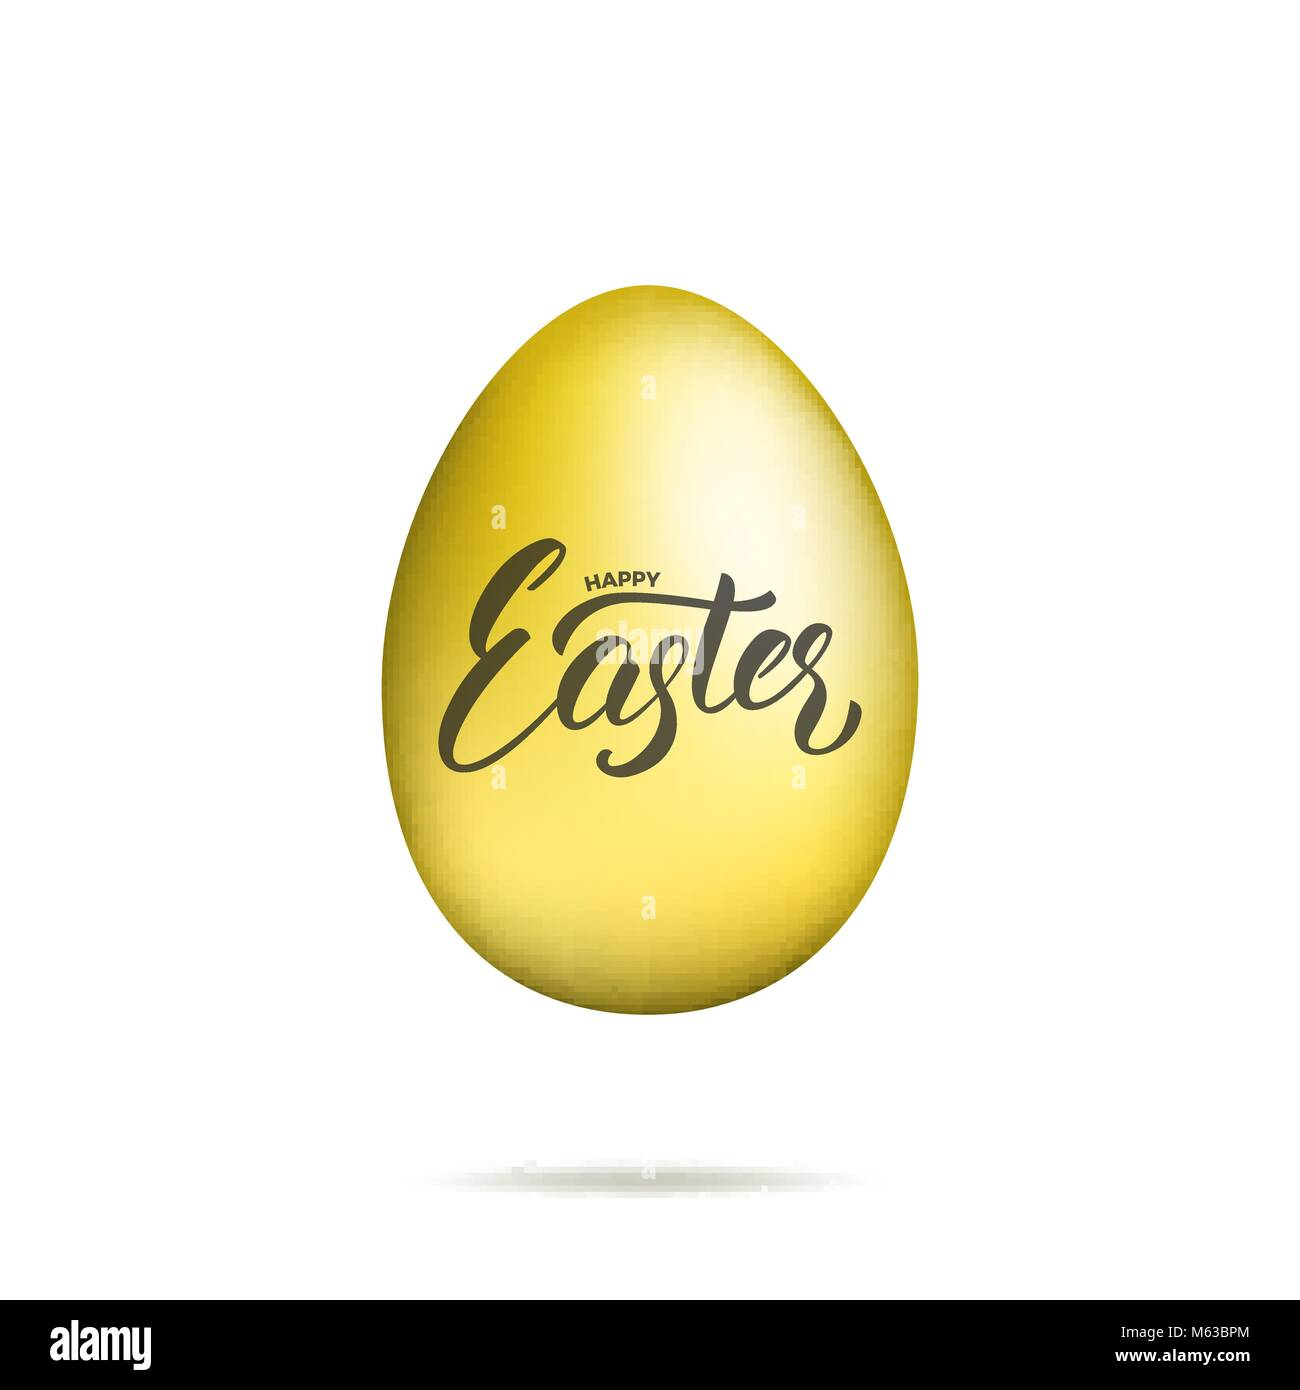 Easter. Gold egg with Happy Easter script lettering. Easter holiday design - Stock Image